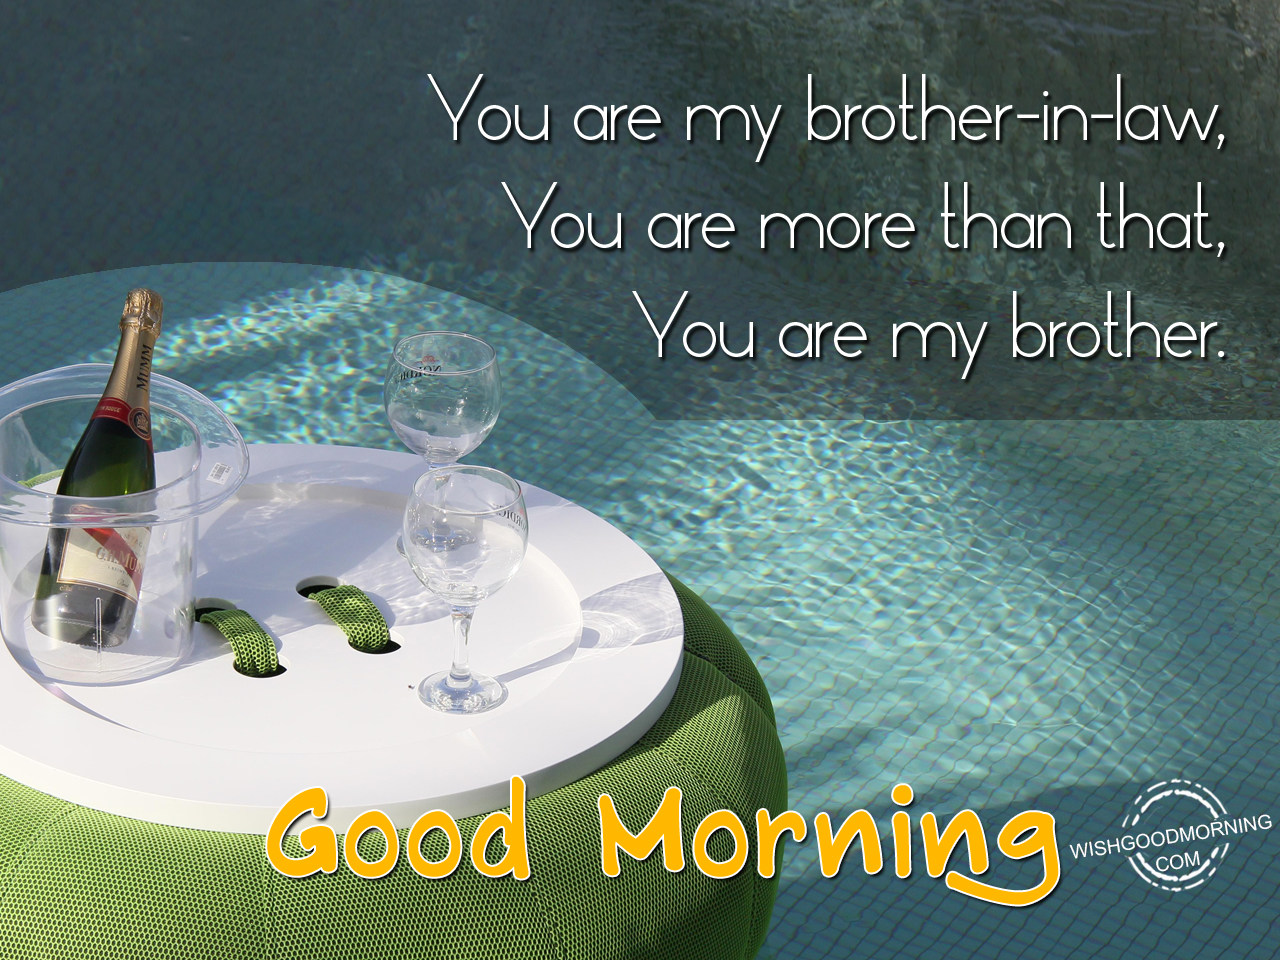 Good Morning Brother : Good morning wishes for brother in law